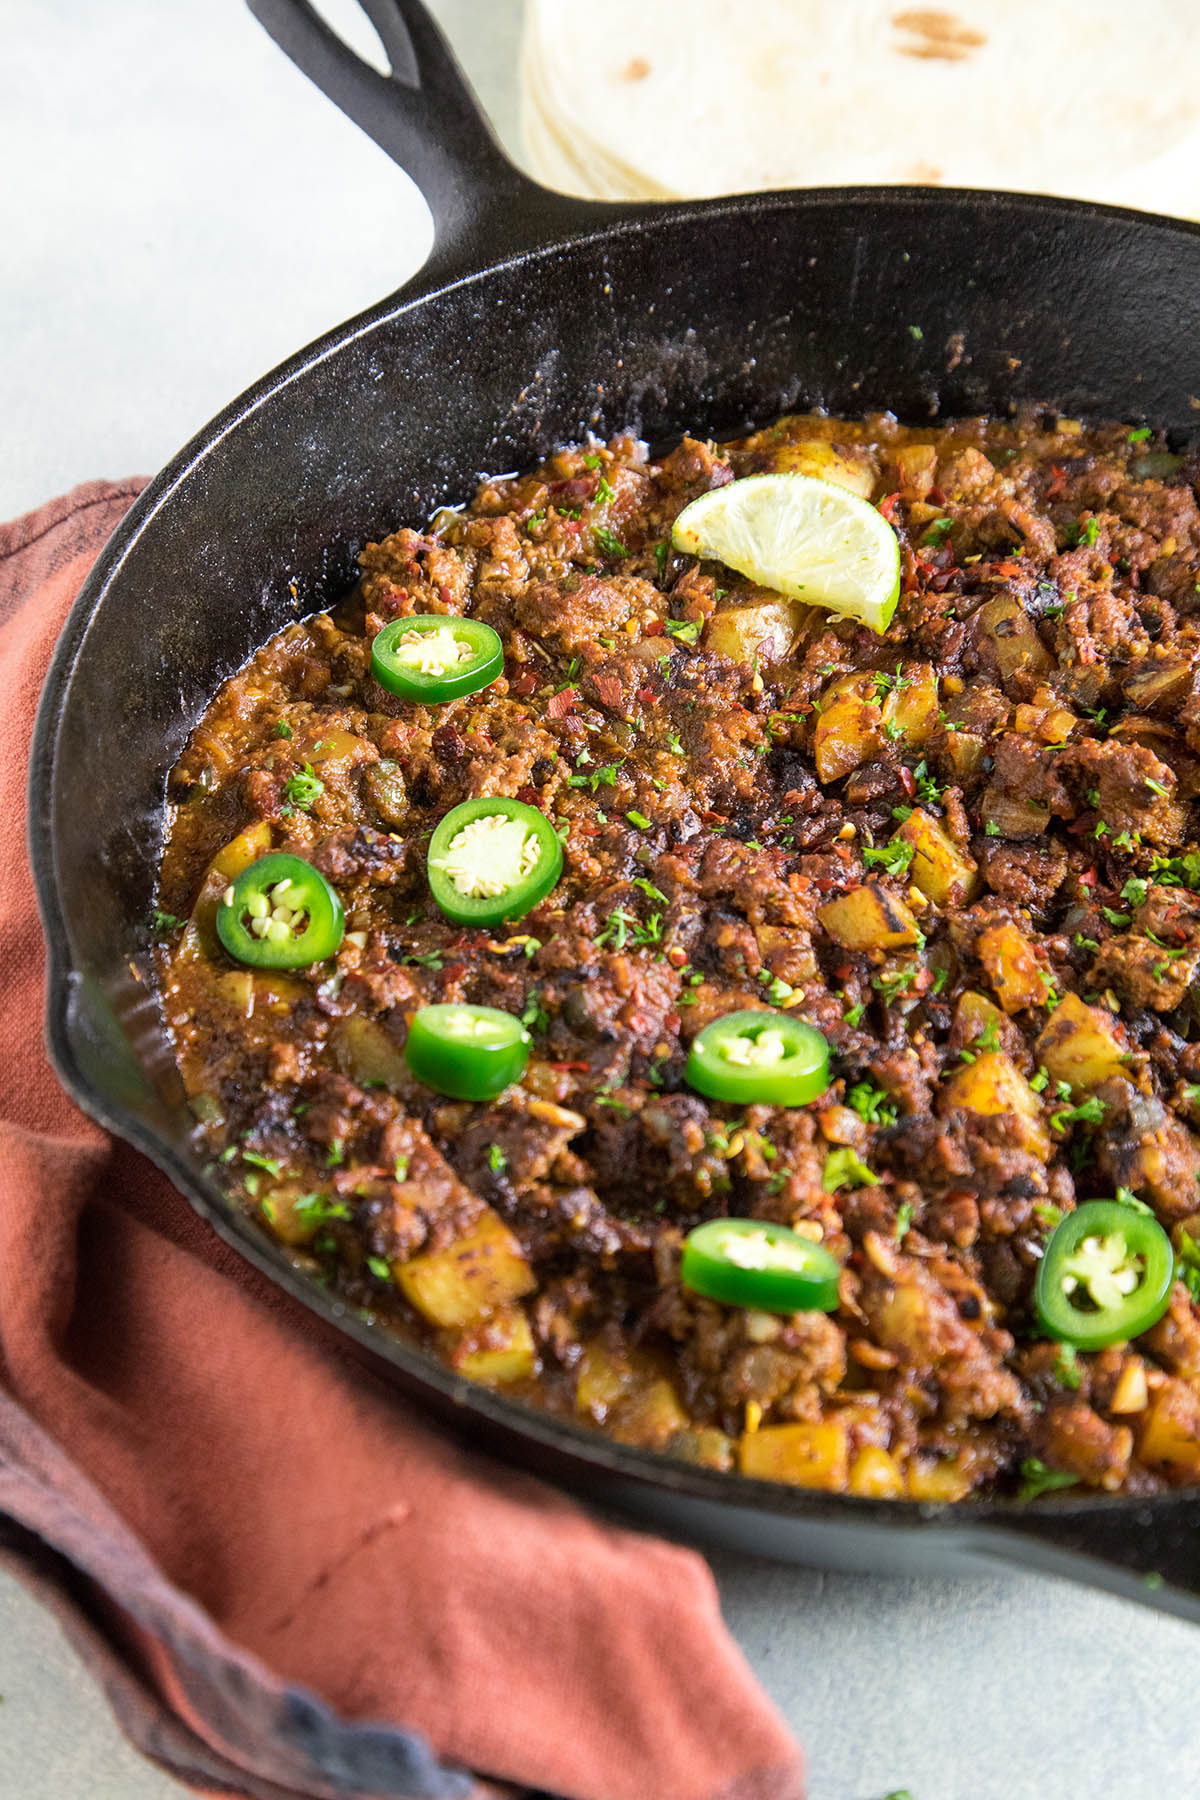 Mexican Picadillo Recipe - One of Favorite Recipes